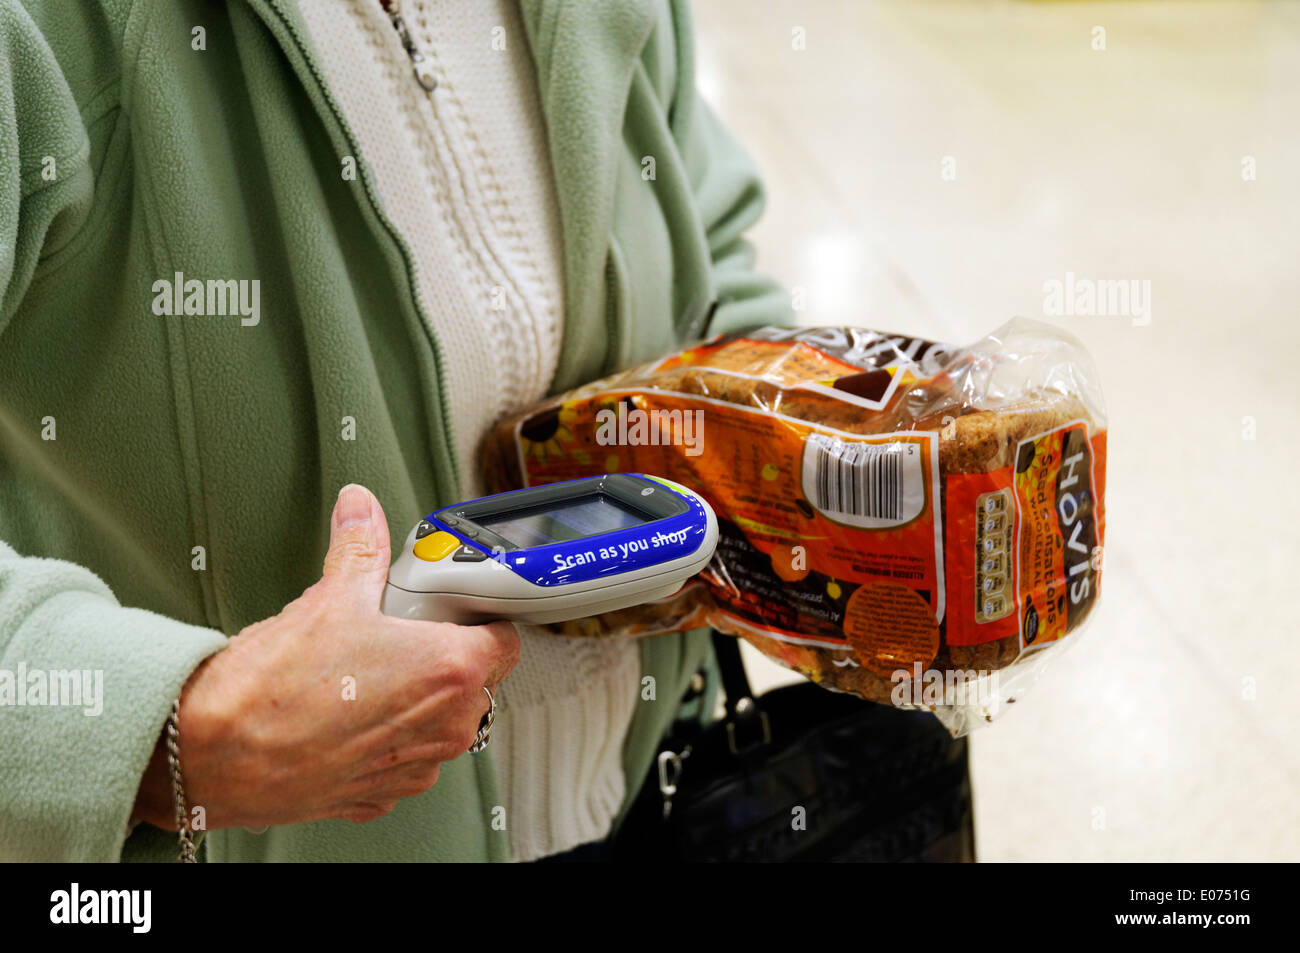 An older woman's hands scanning a loaf of bread in Tesco Scan as you Shop - Stock Image